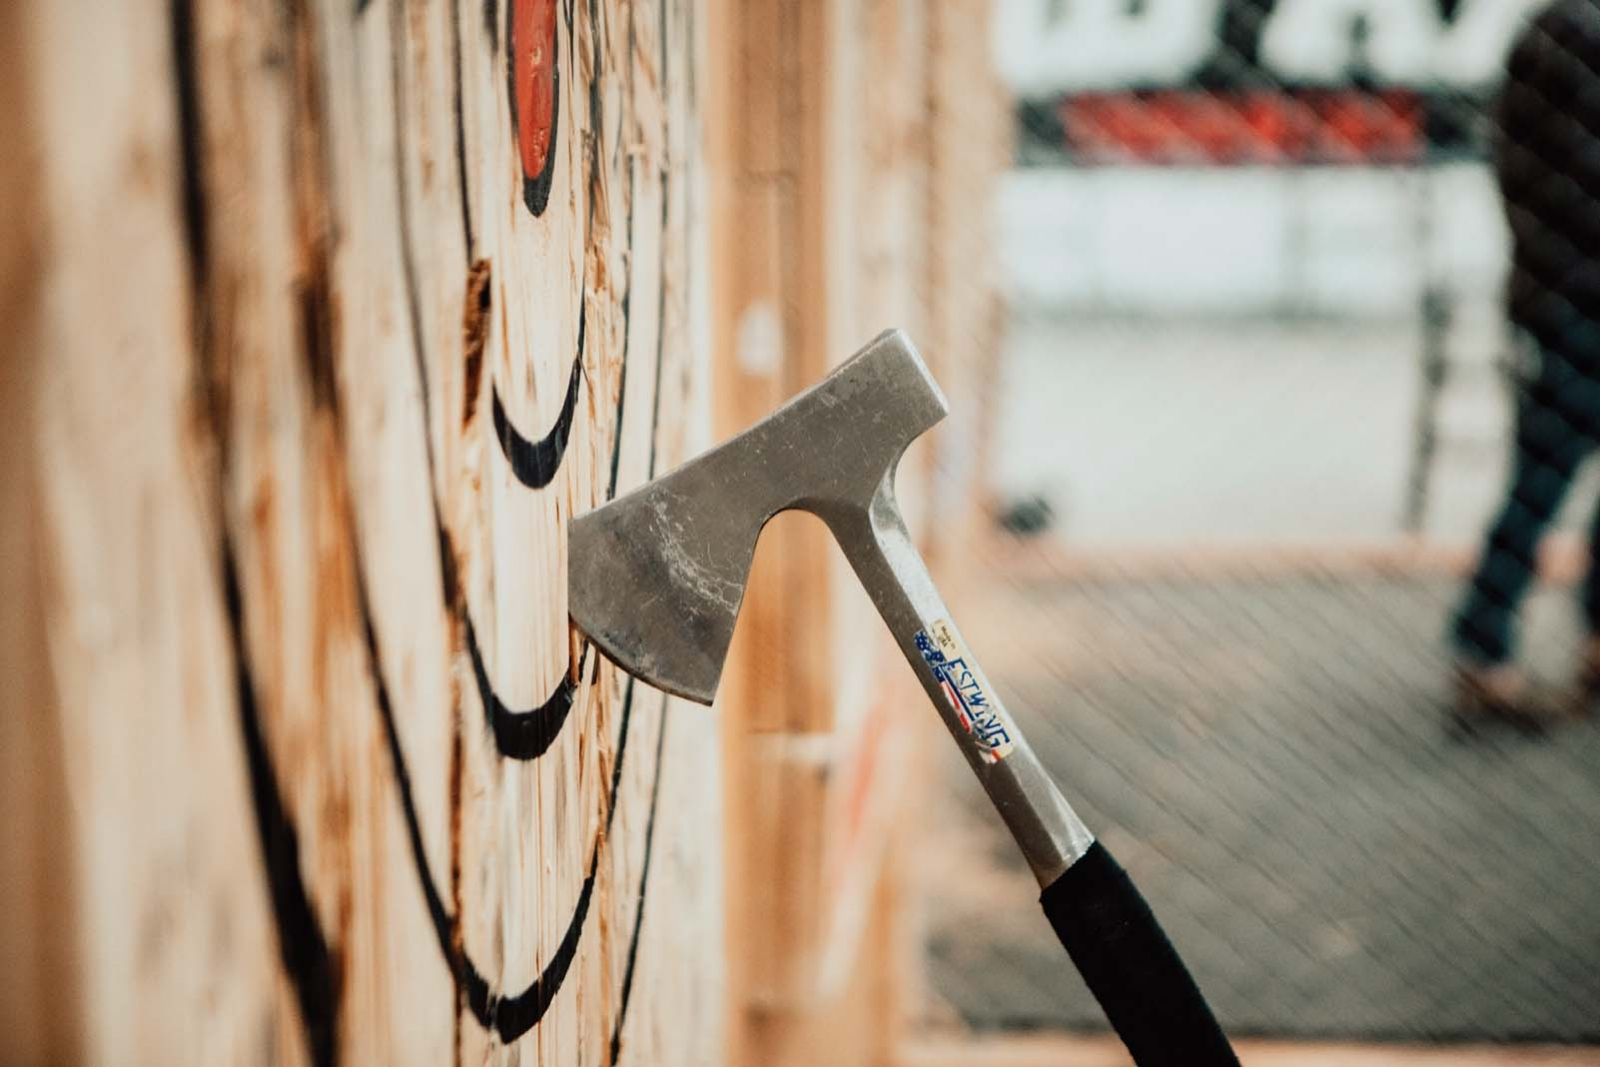 An axe stuck in a target at Bad Axe Throwing.